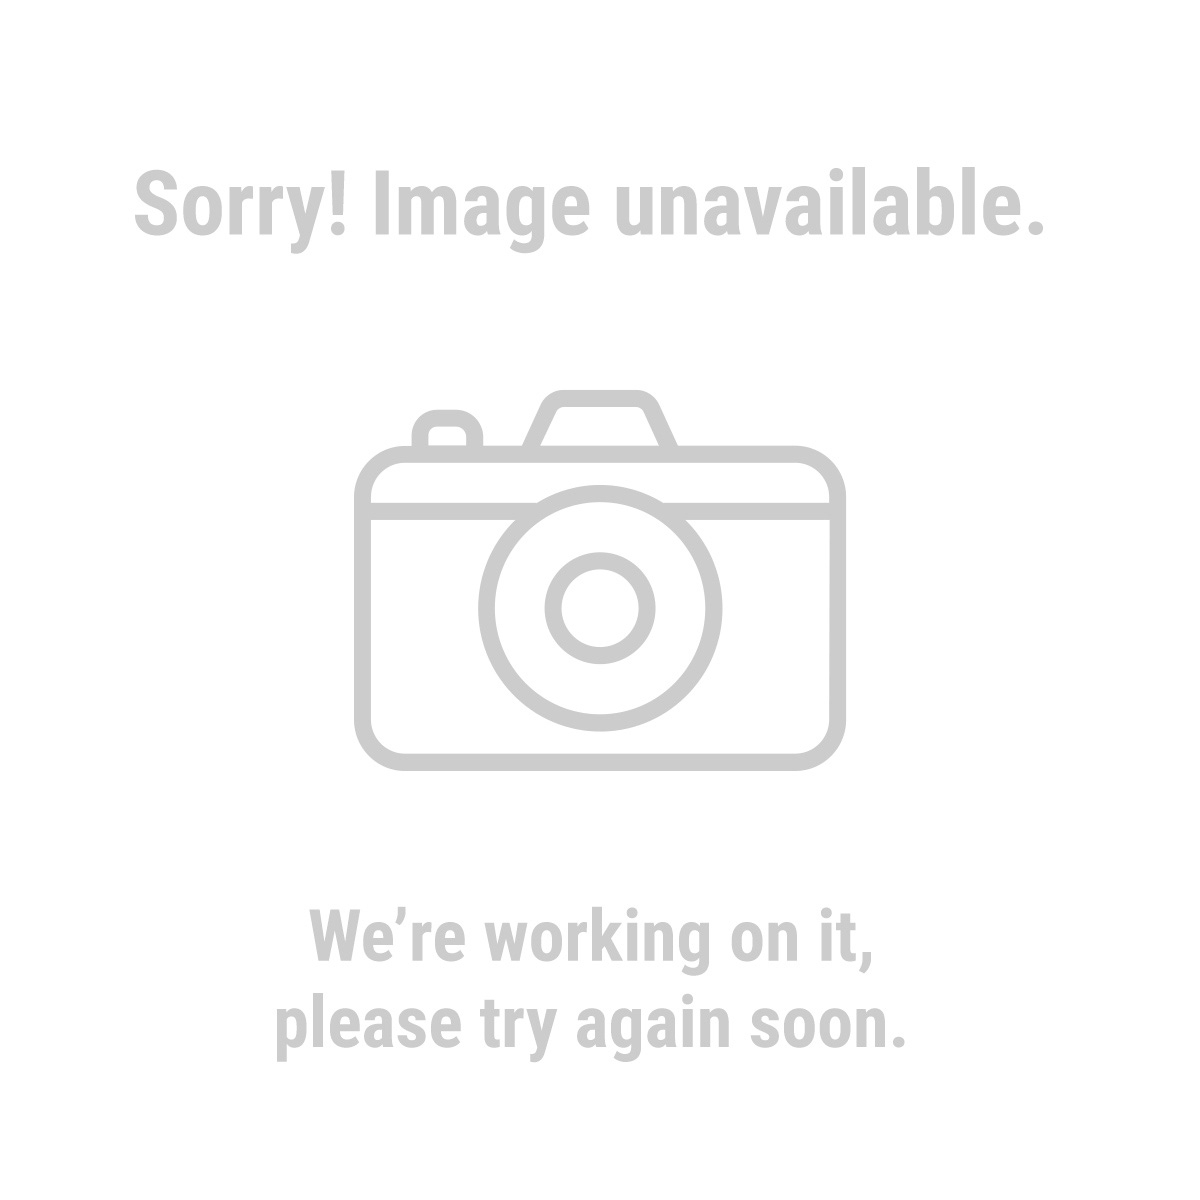 U.S. General® 99731 3 Piece Drawer Organizer Set